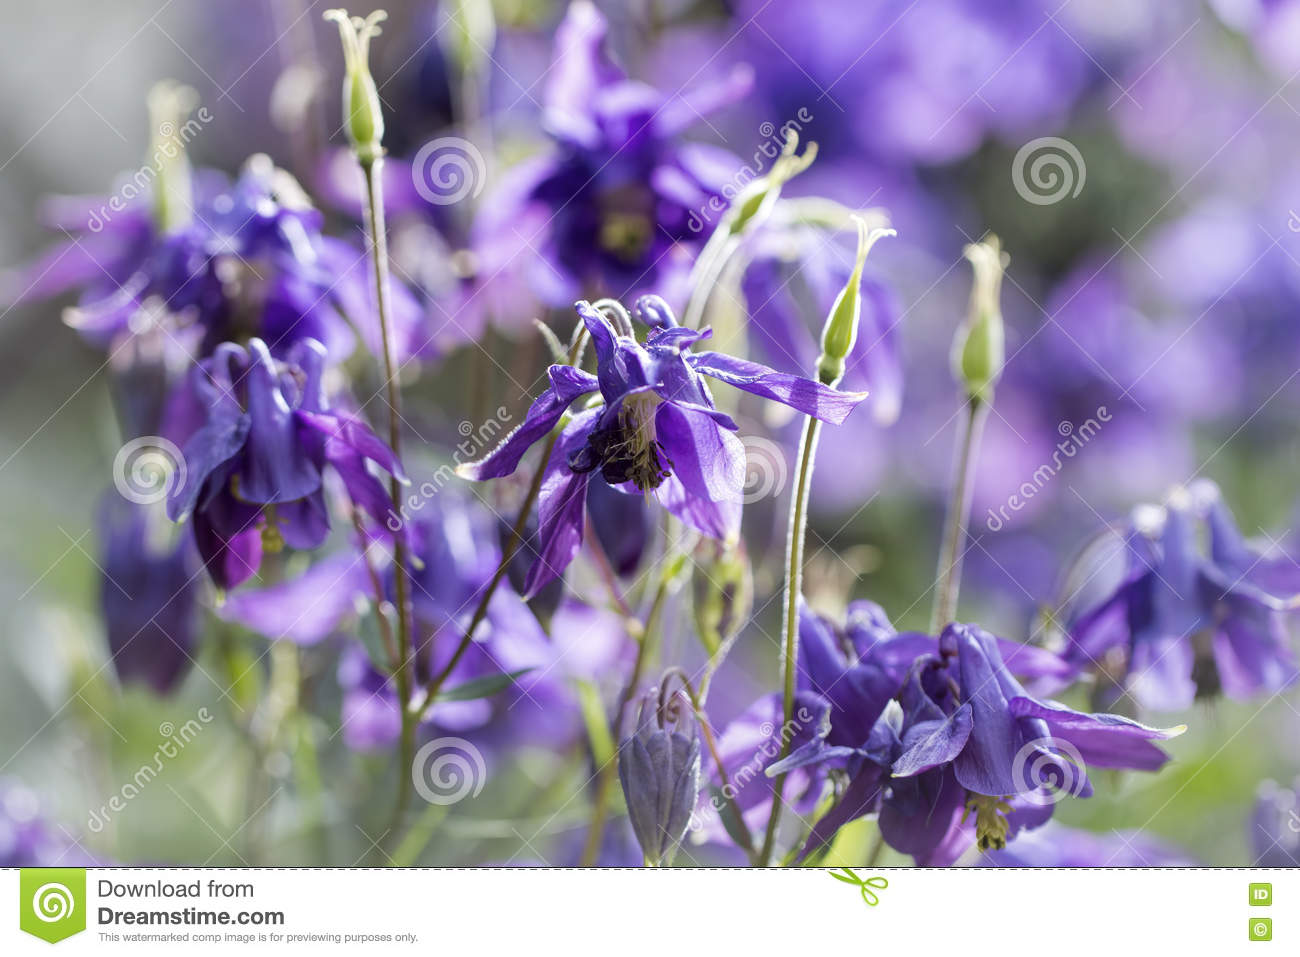 Blue columbine flower colorful spring background stock photo image download blue columbine flower colorful spring background stock photo image of summer color izmirmasajfo